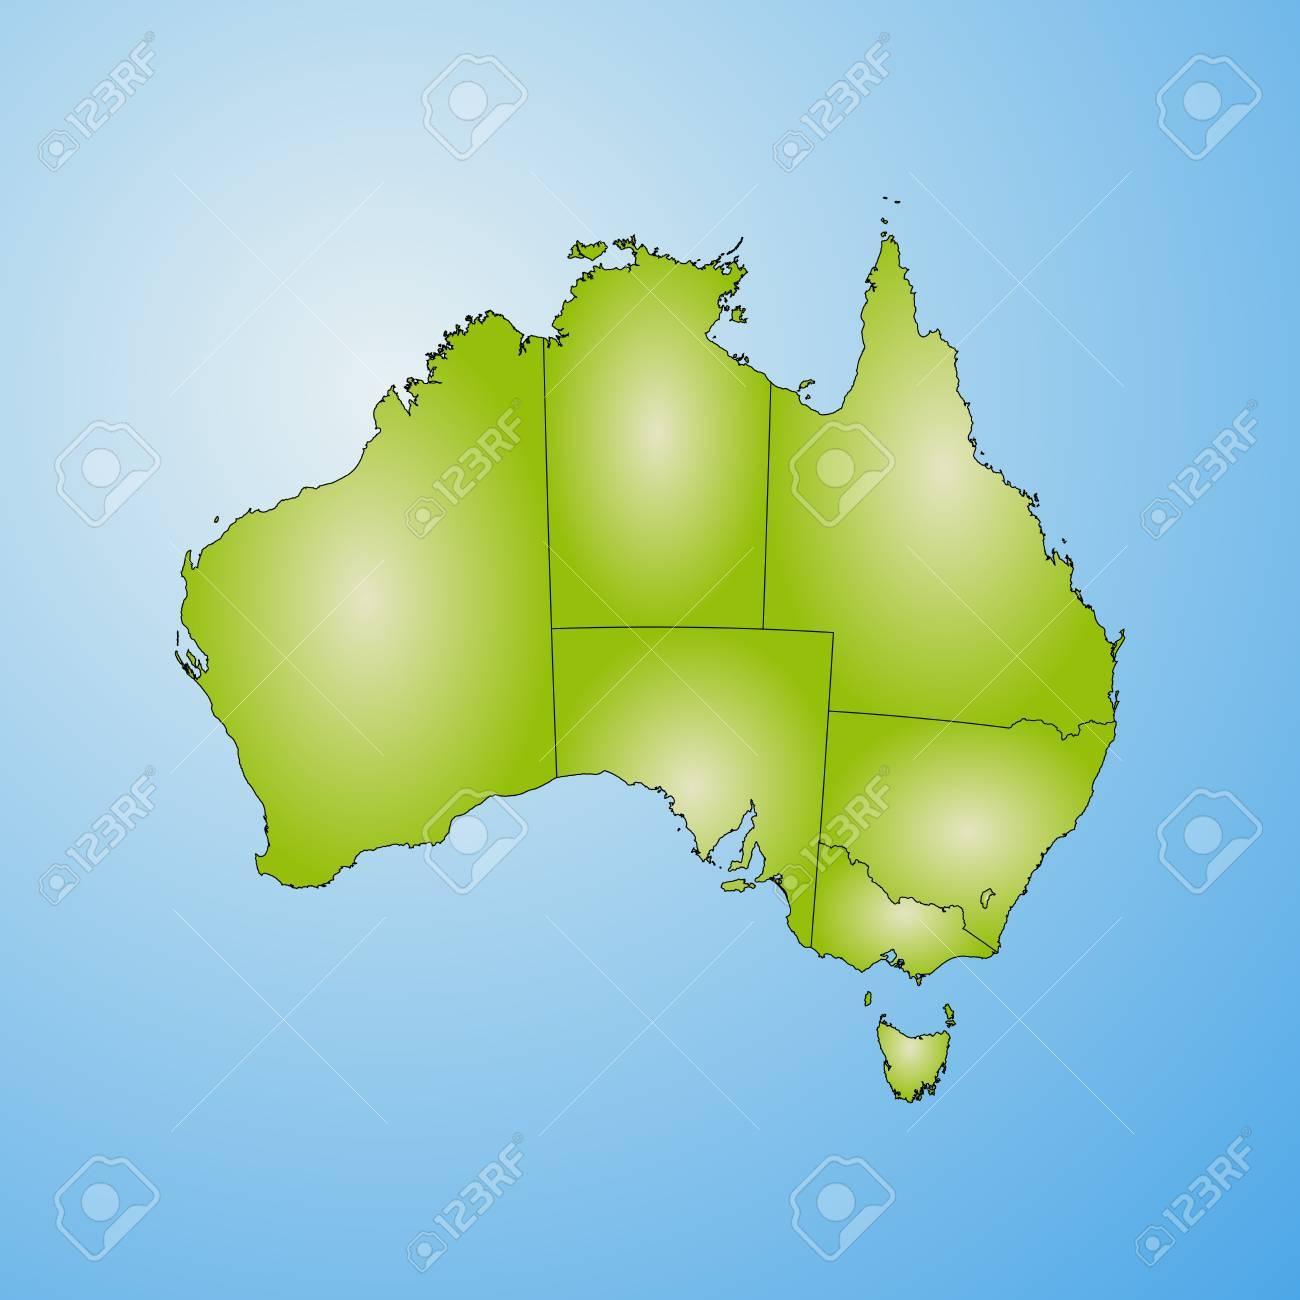 Australia Map Provinces.Map Of Australia With The Provinces Filled With A Radial Gradient